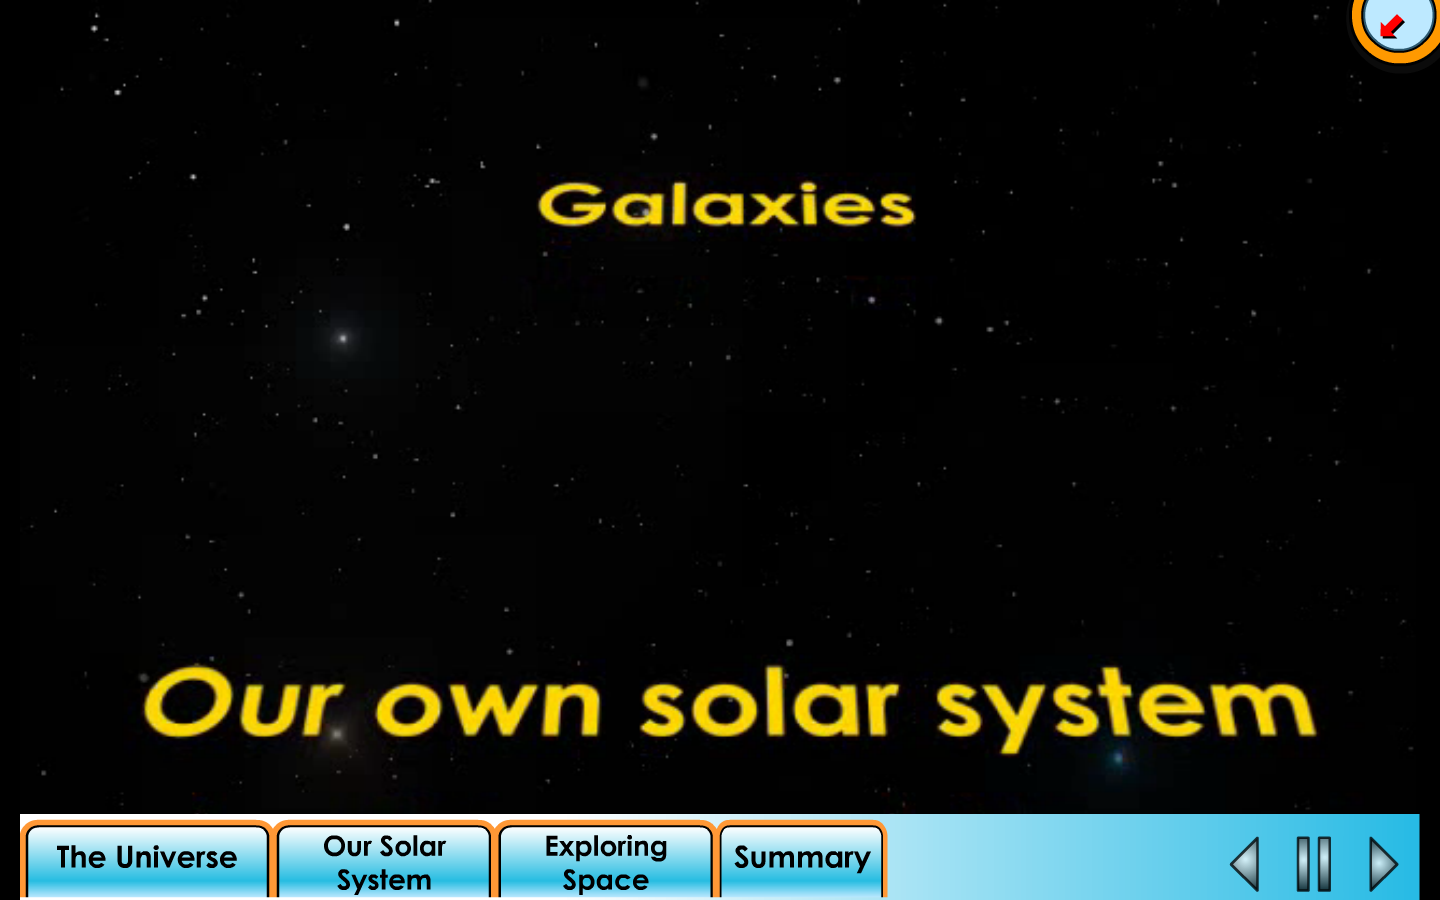 Star Wars theme solar system lecture